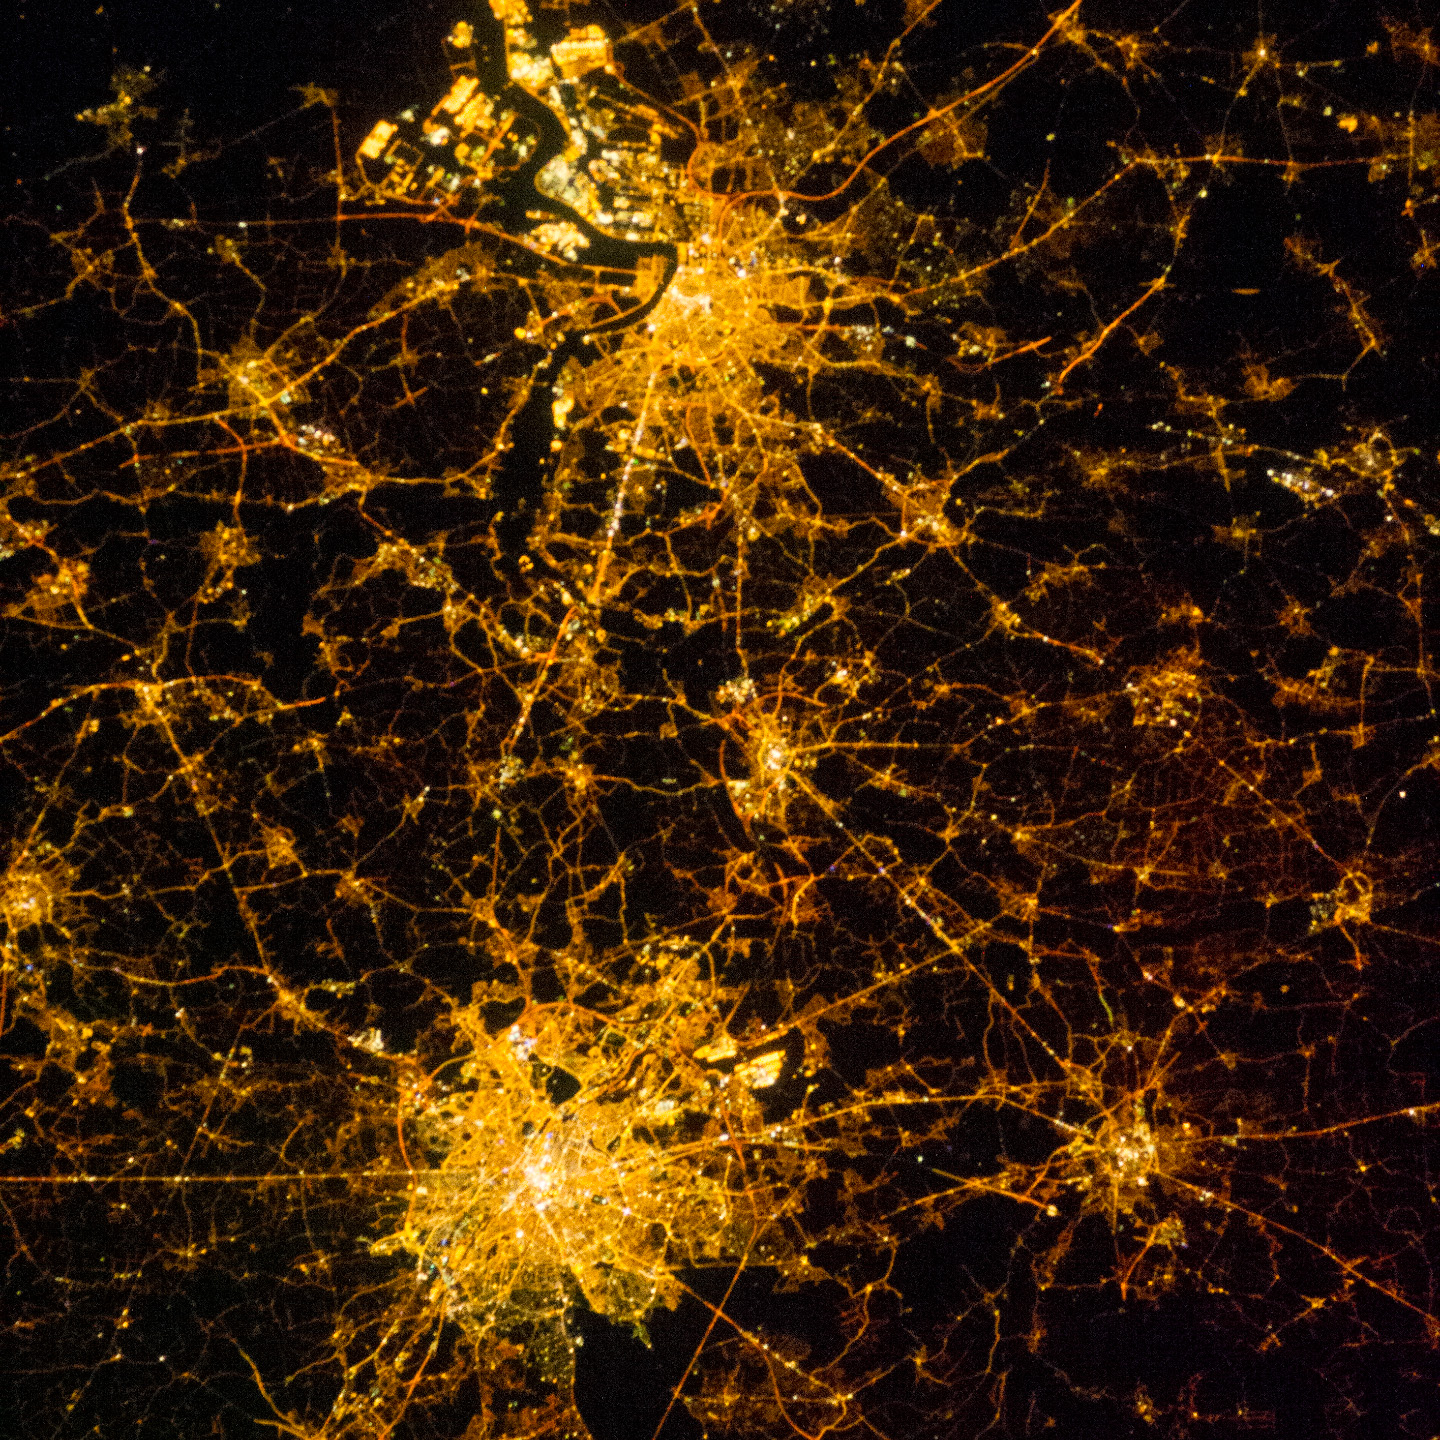 Today's Image of the Day comes thanks to the NASA Earth Observatory and features a look at Brussels and Antwerp, Belgium at night.